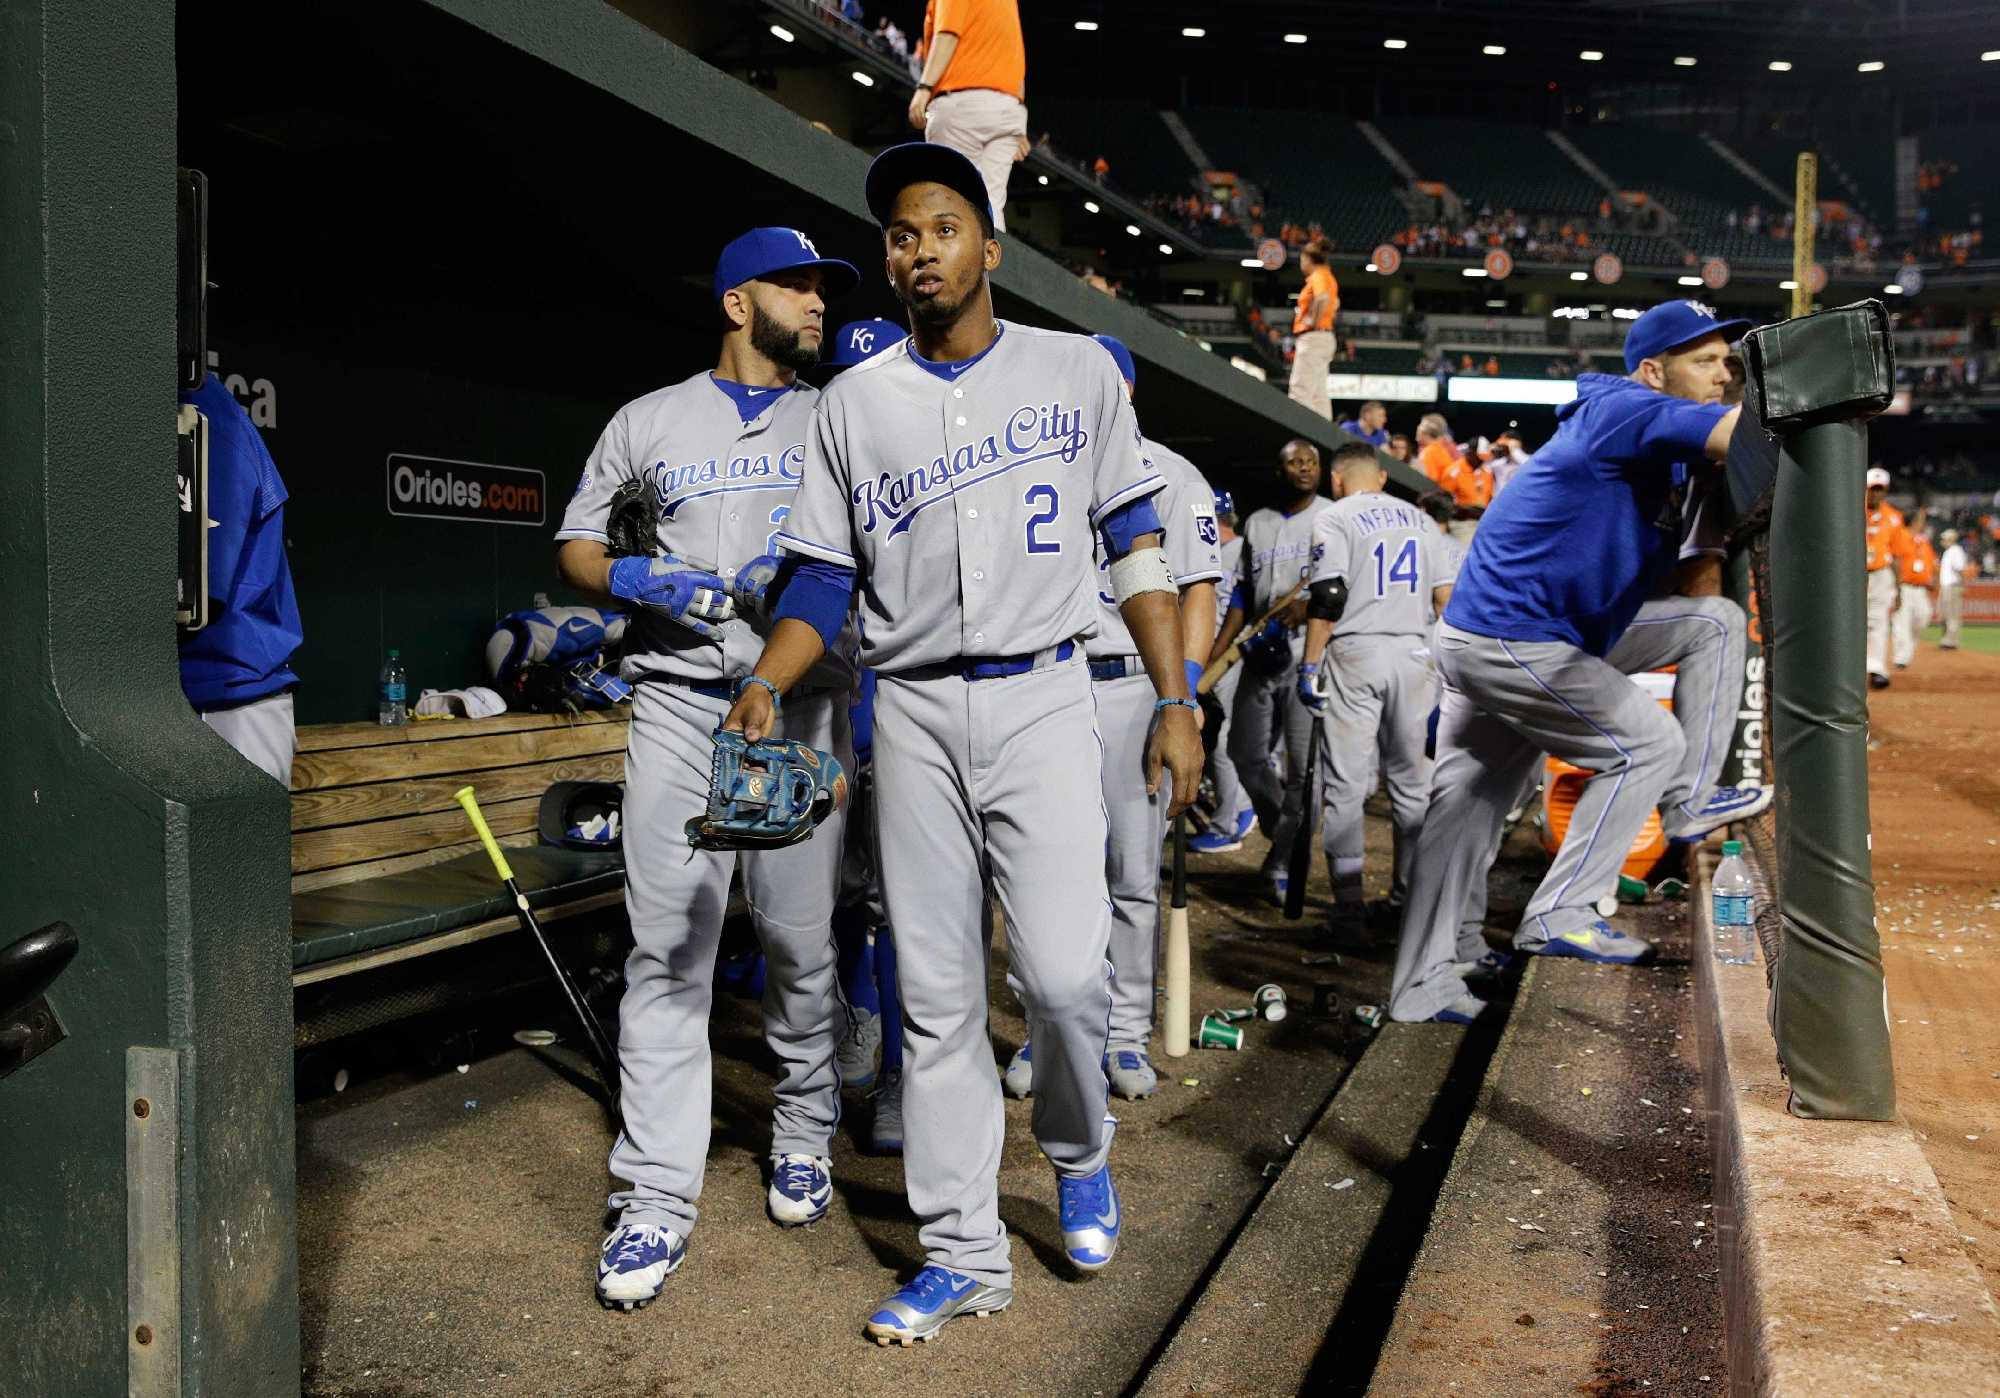 Royals and shortstop Alcides Escobar reportedly reach deal